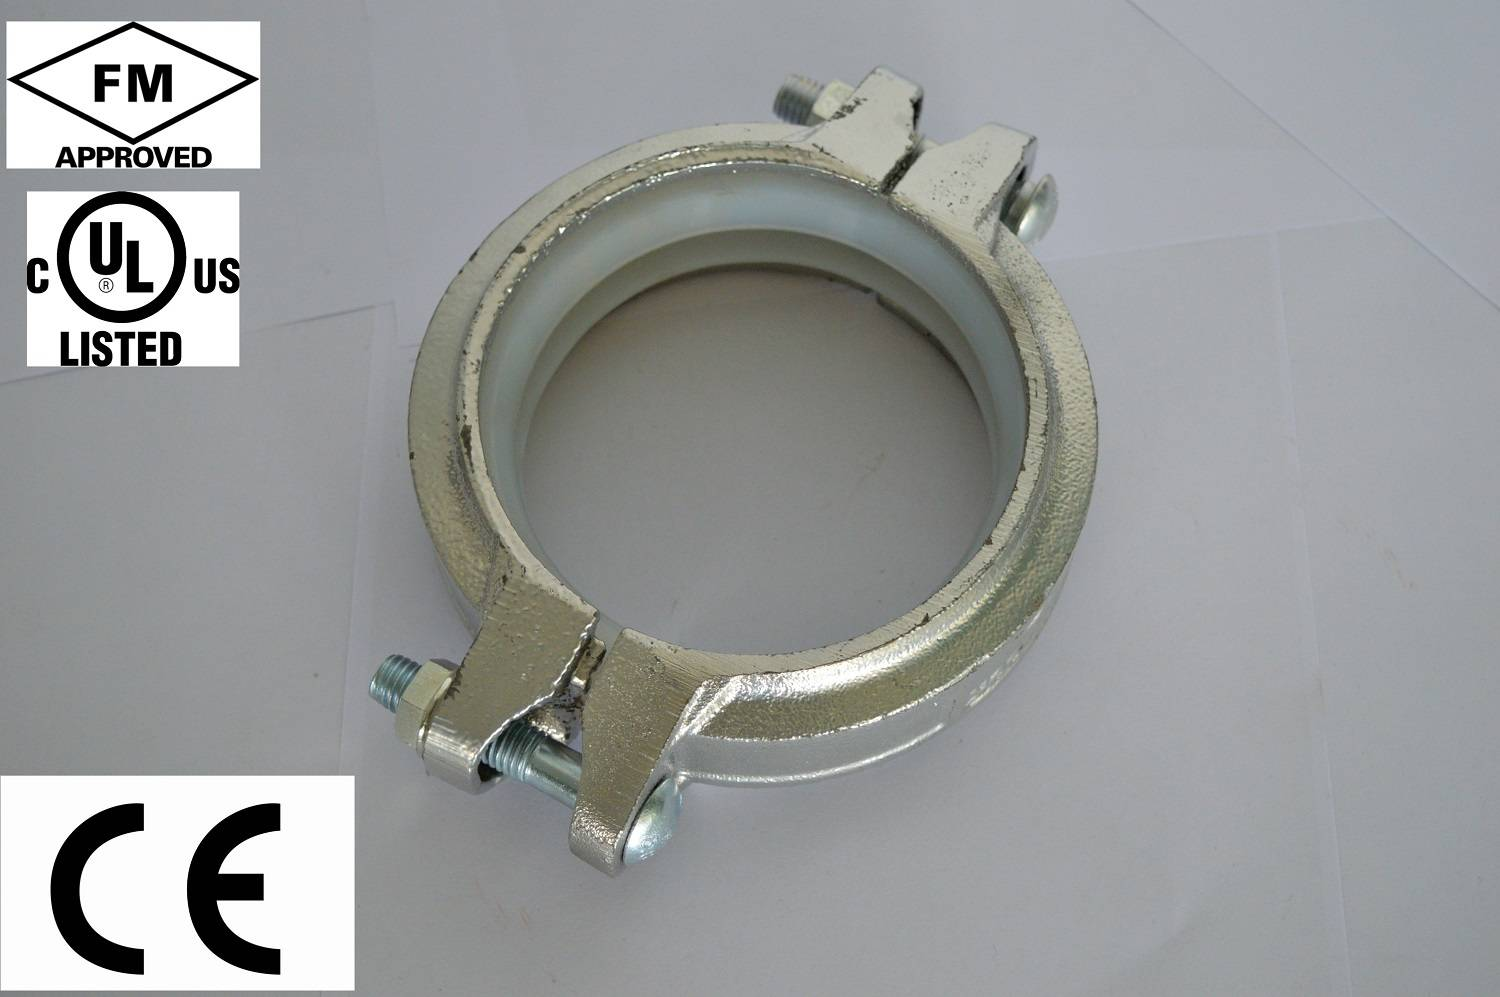 FM UL cUL approved ductile iron grooved coupling and grooved pipe fitting